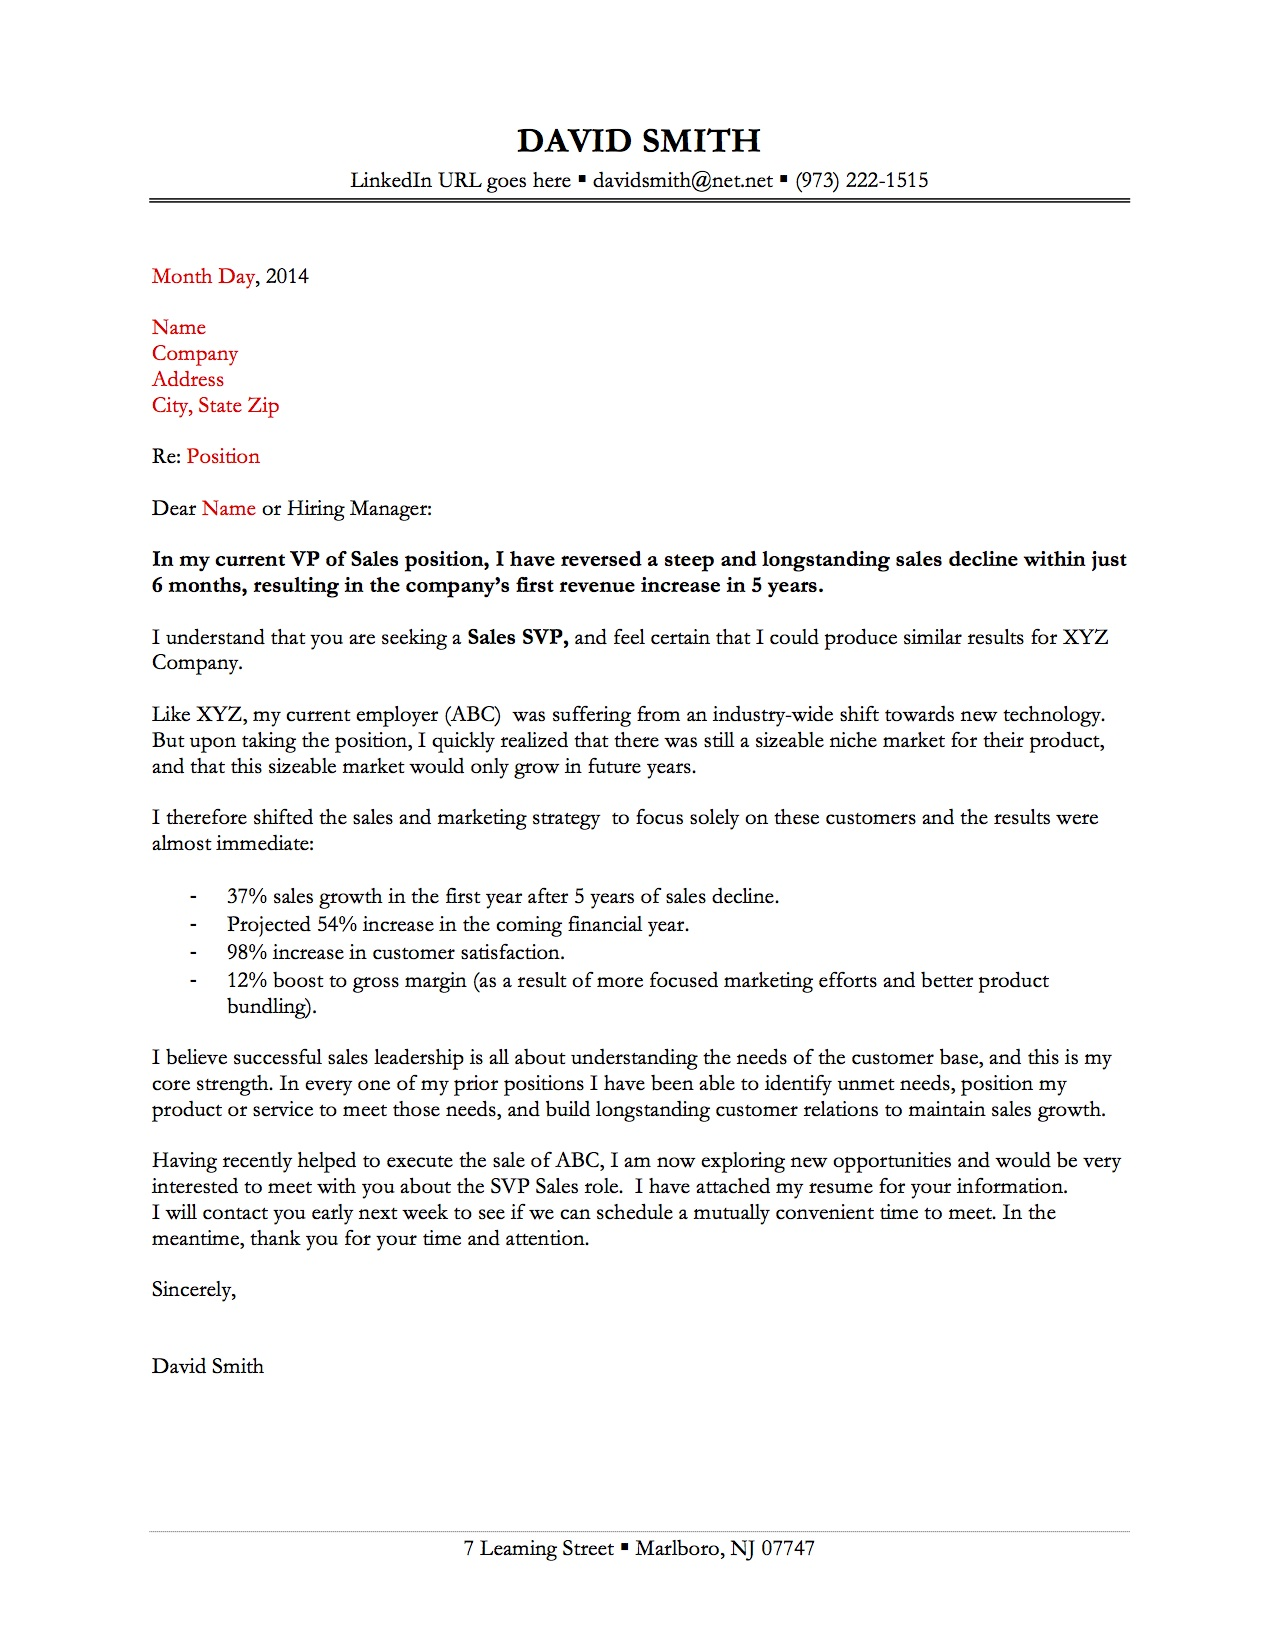 Sample Cover Letter 2  What Is A Cover Letter Examples